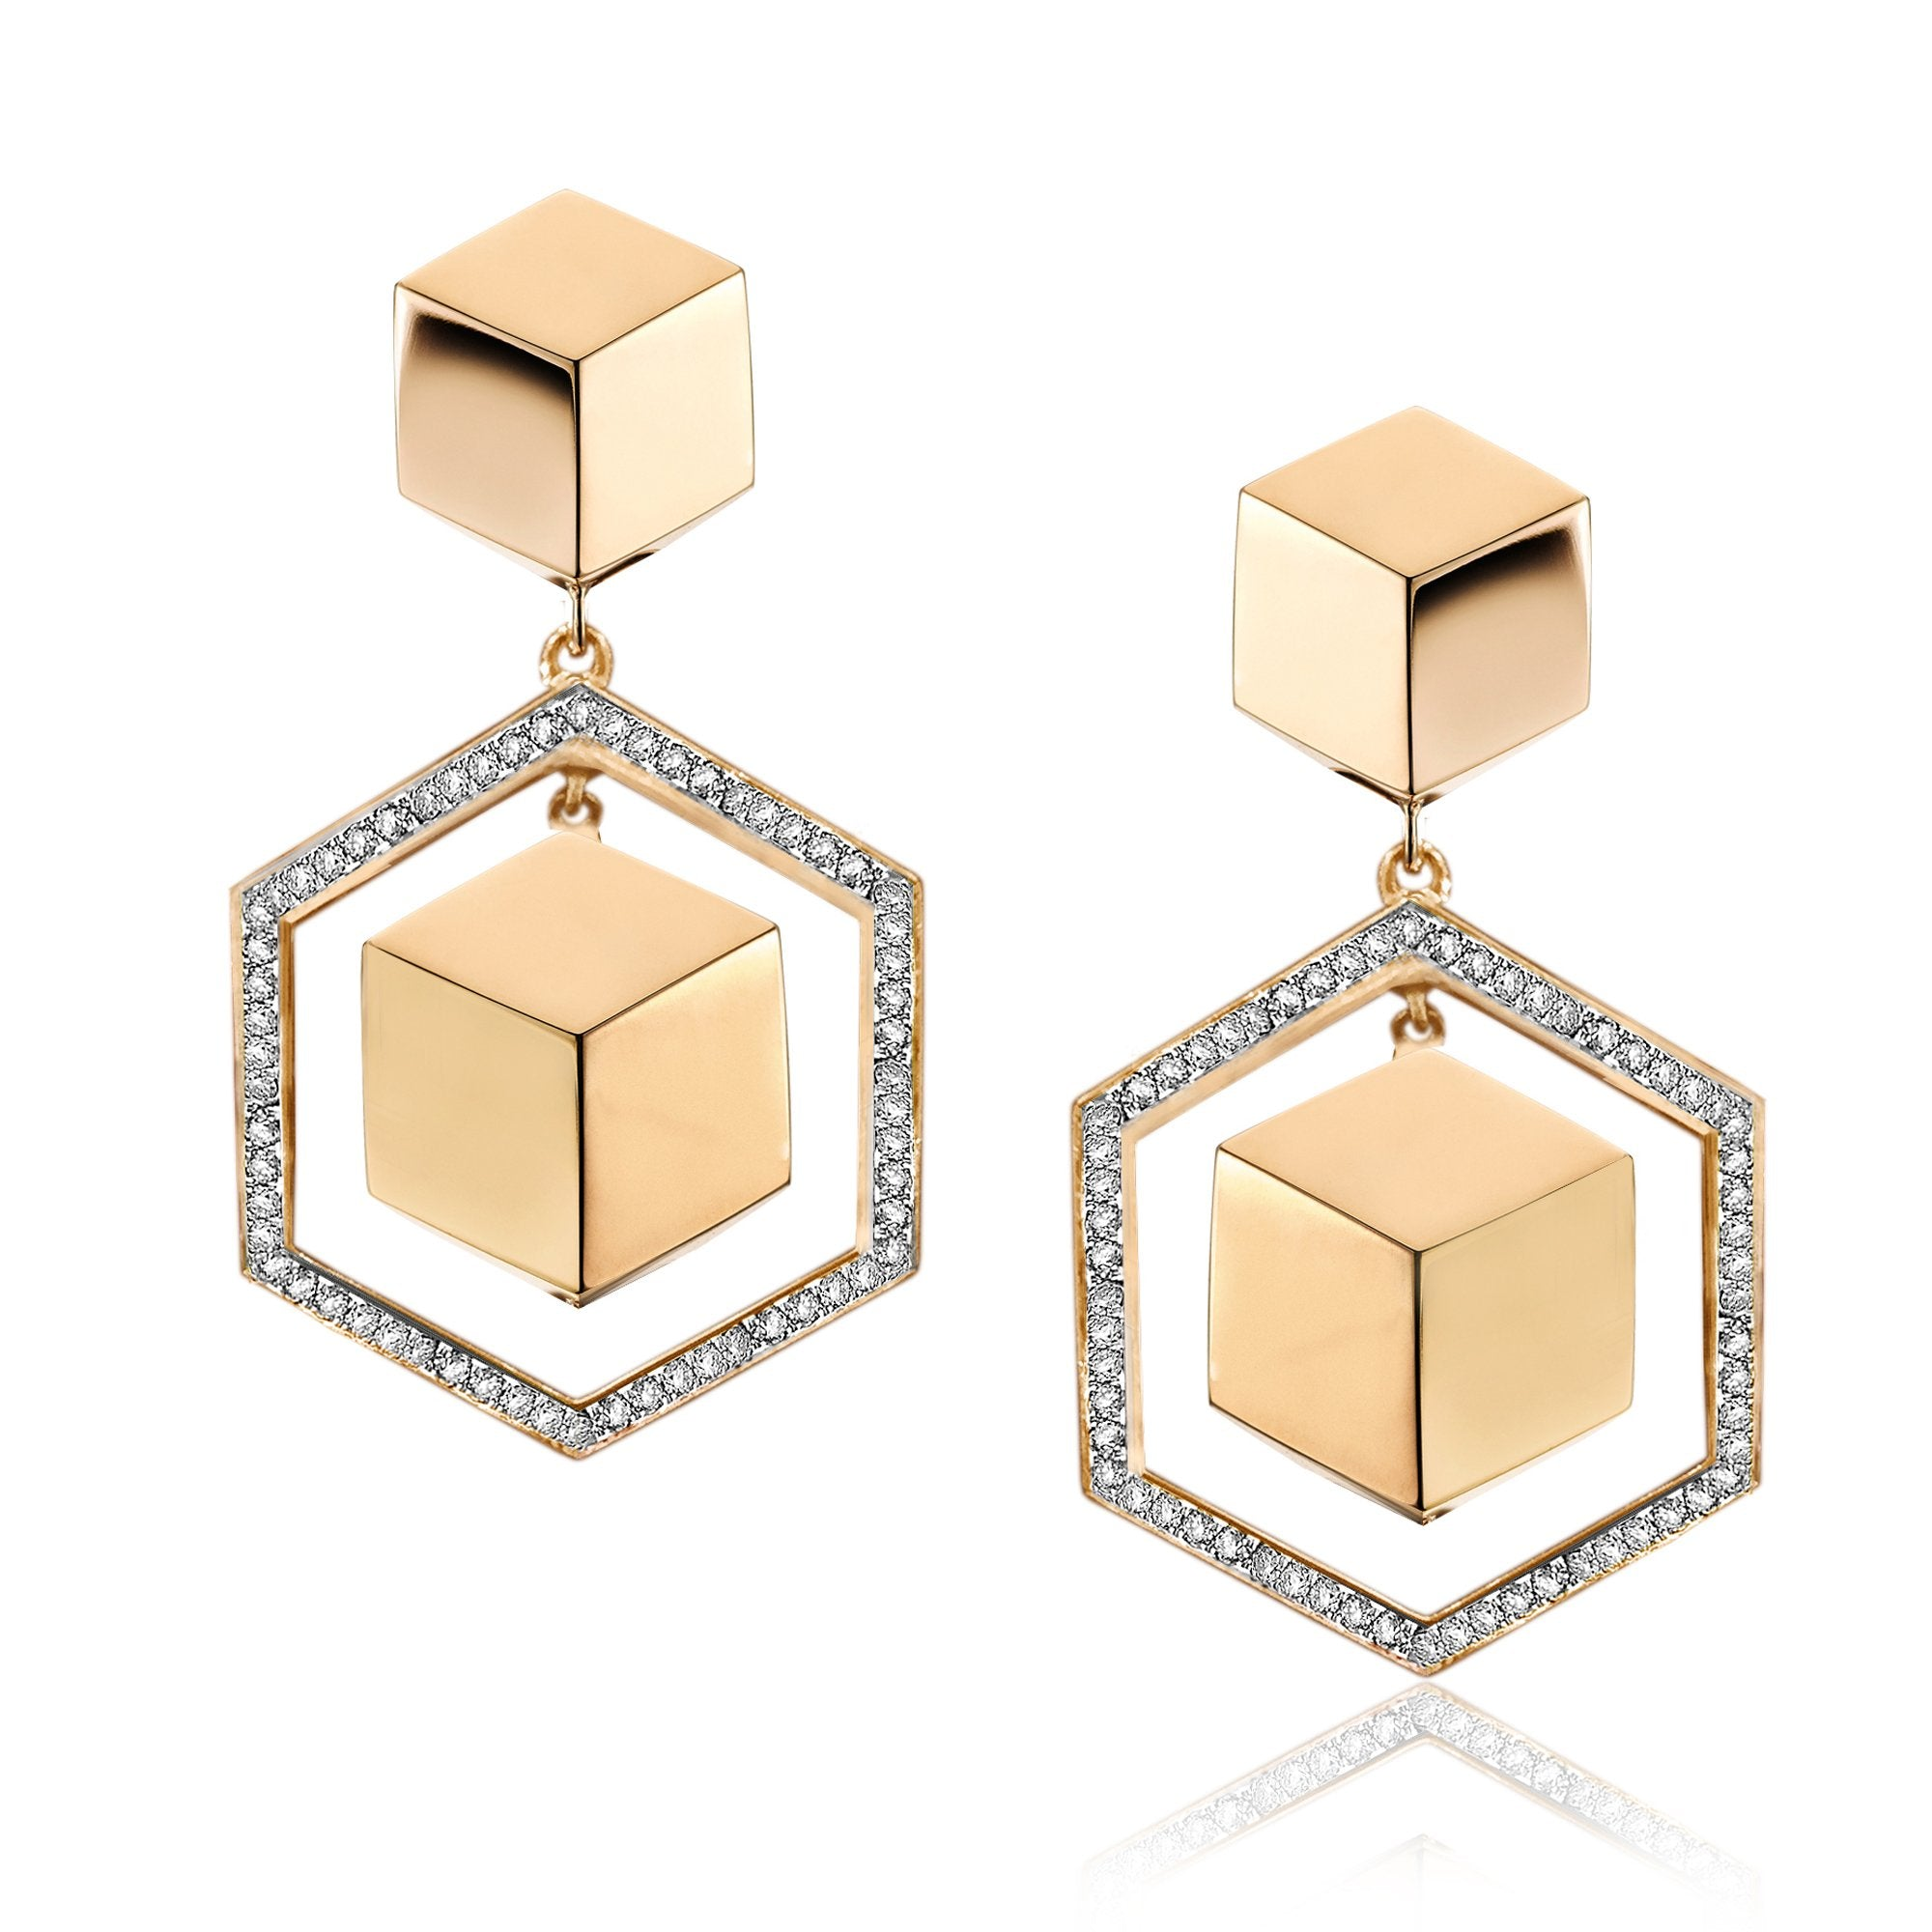 Rose Gold and Diamond 'Brillante®' Earrings - Paolo Costagli - 1